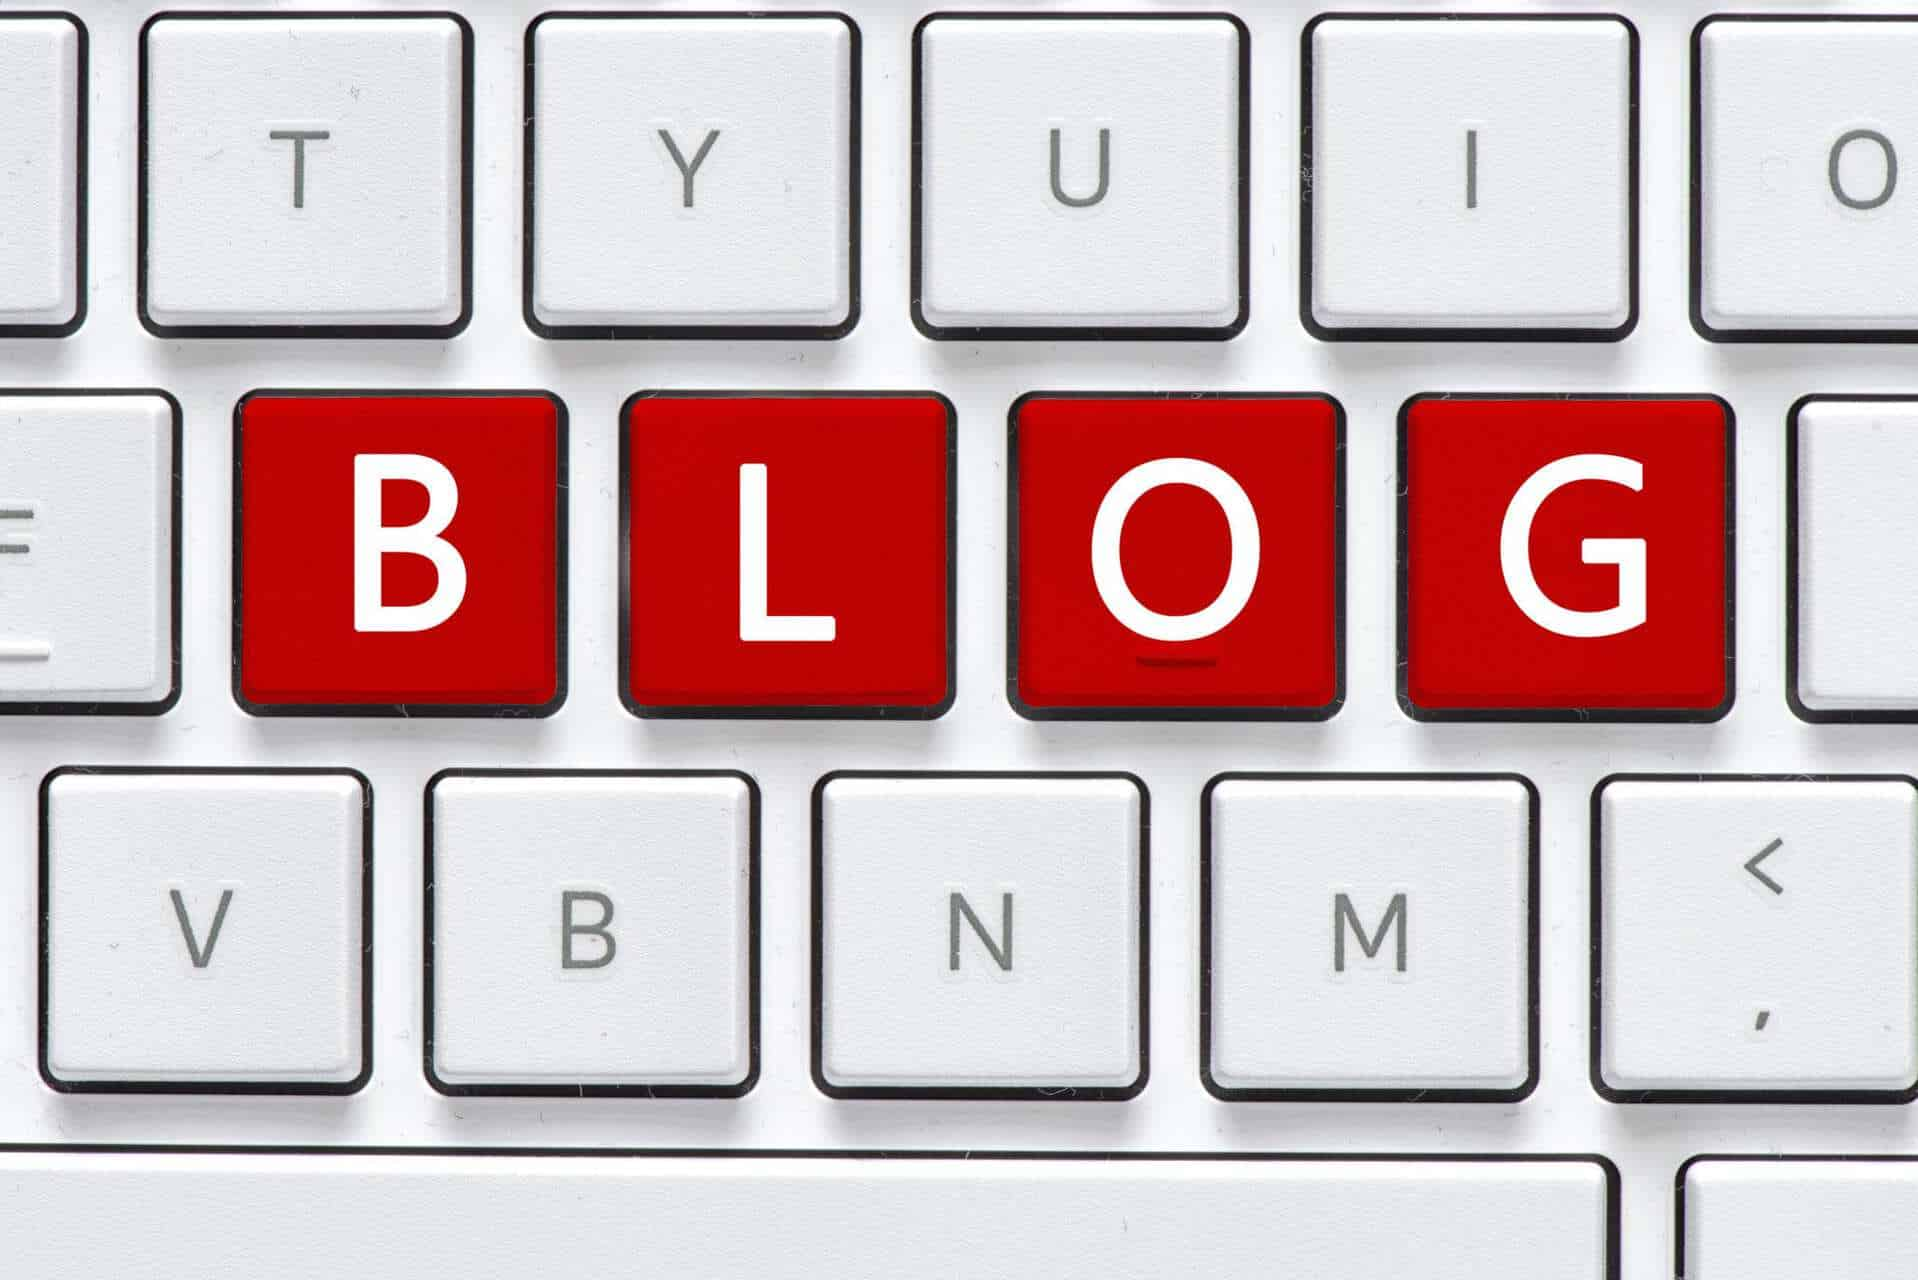 keyboard with blog in red letters